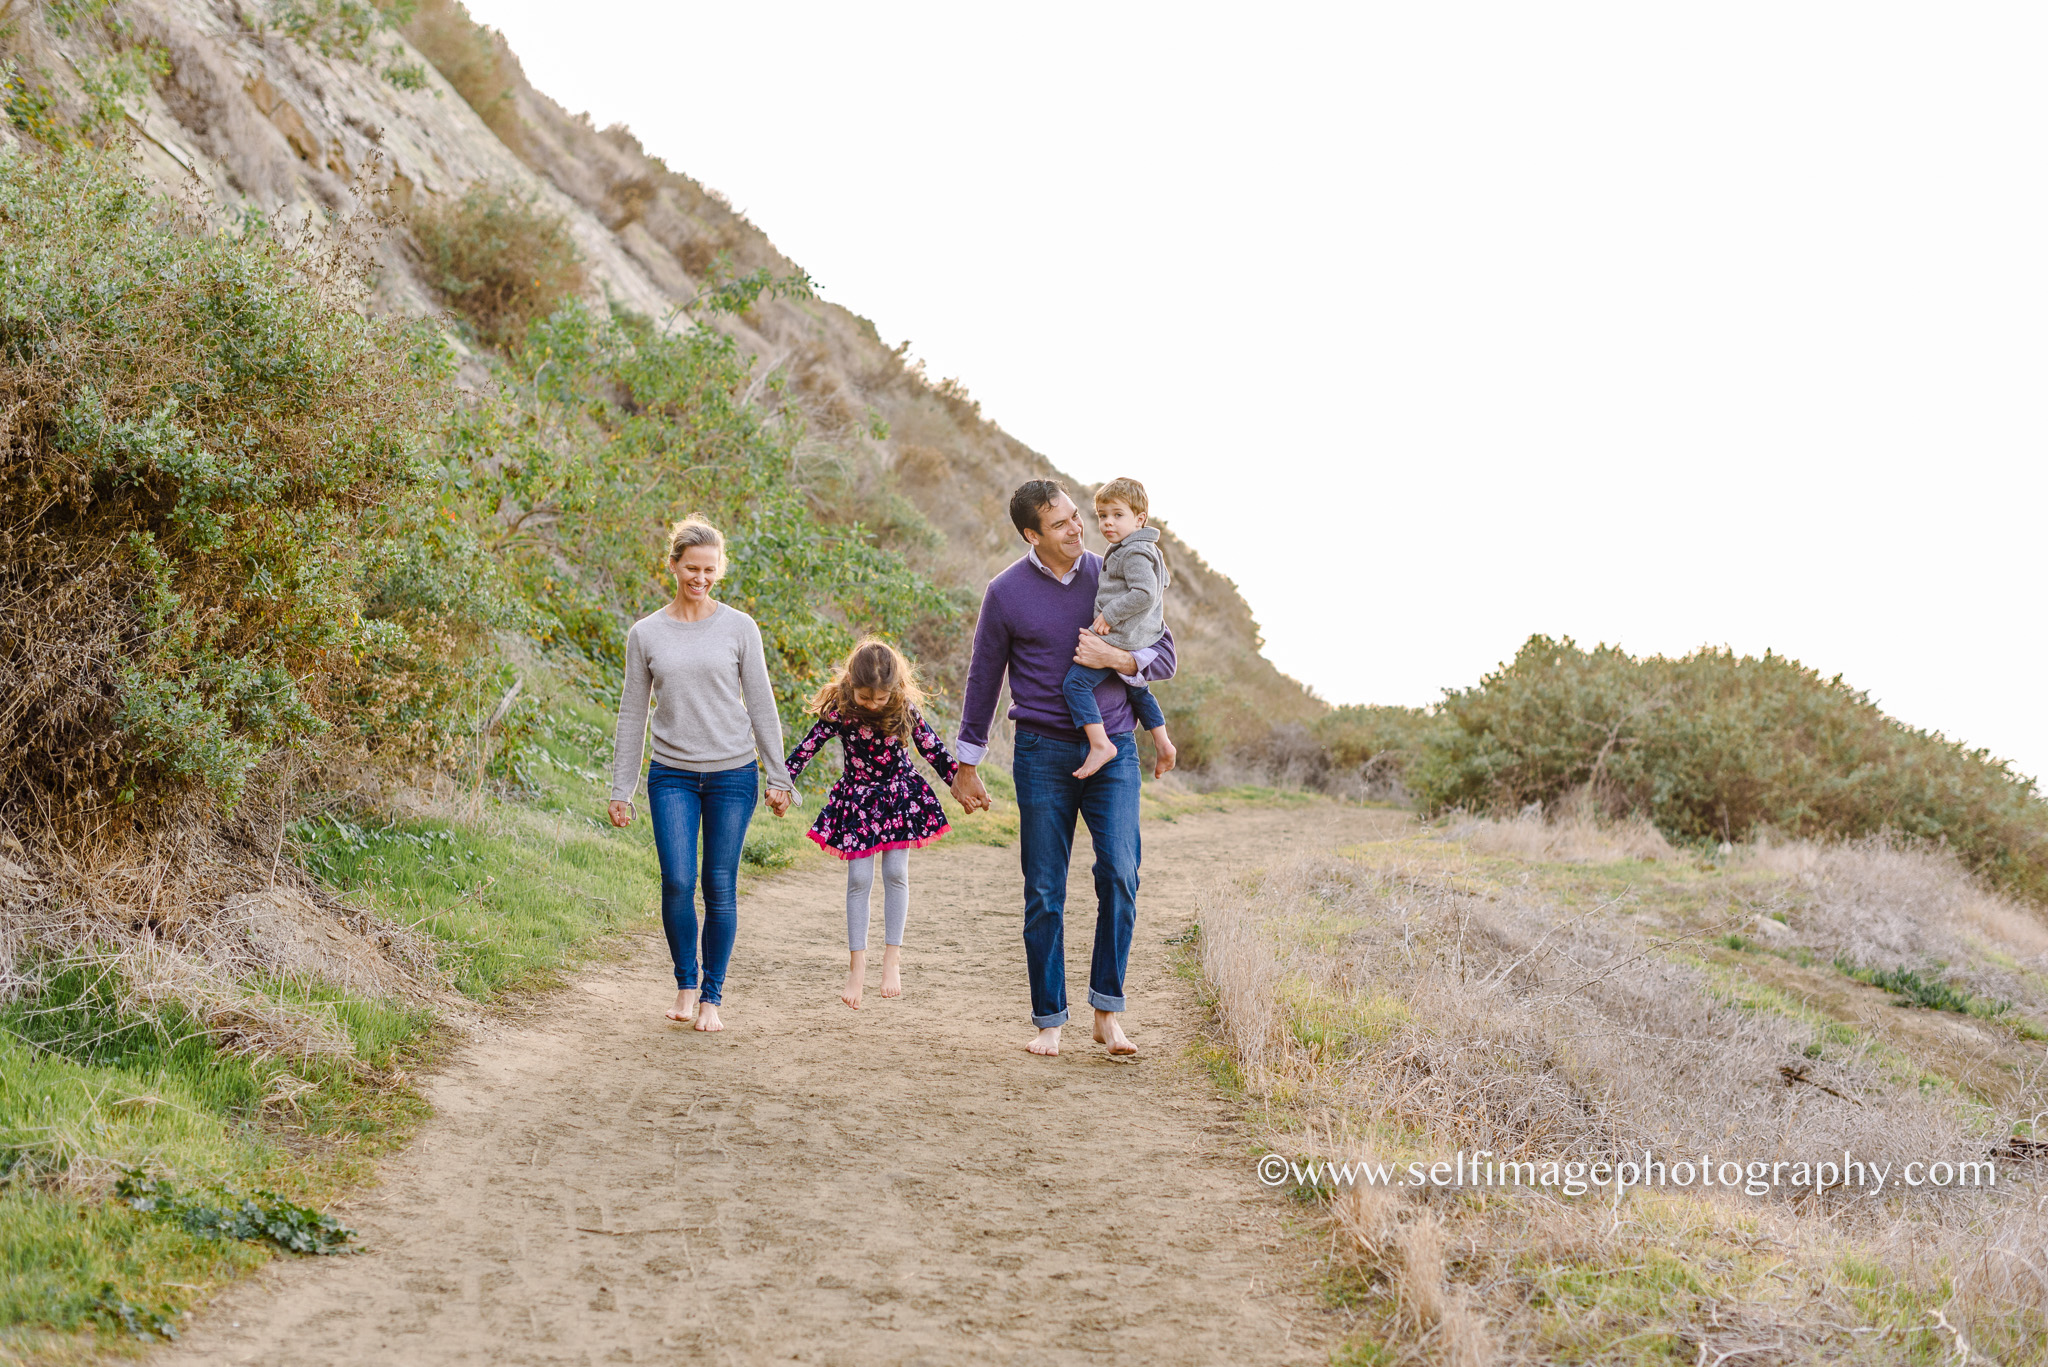 family walking on a path together while holding hands